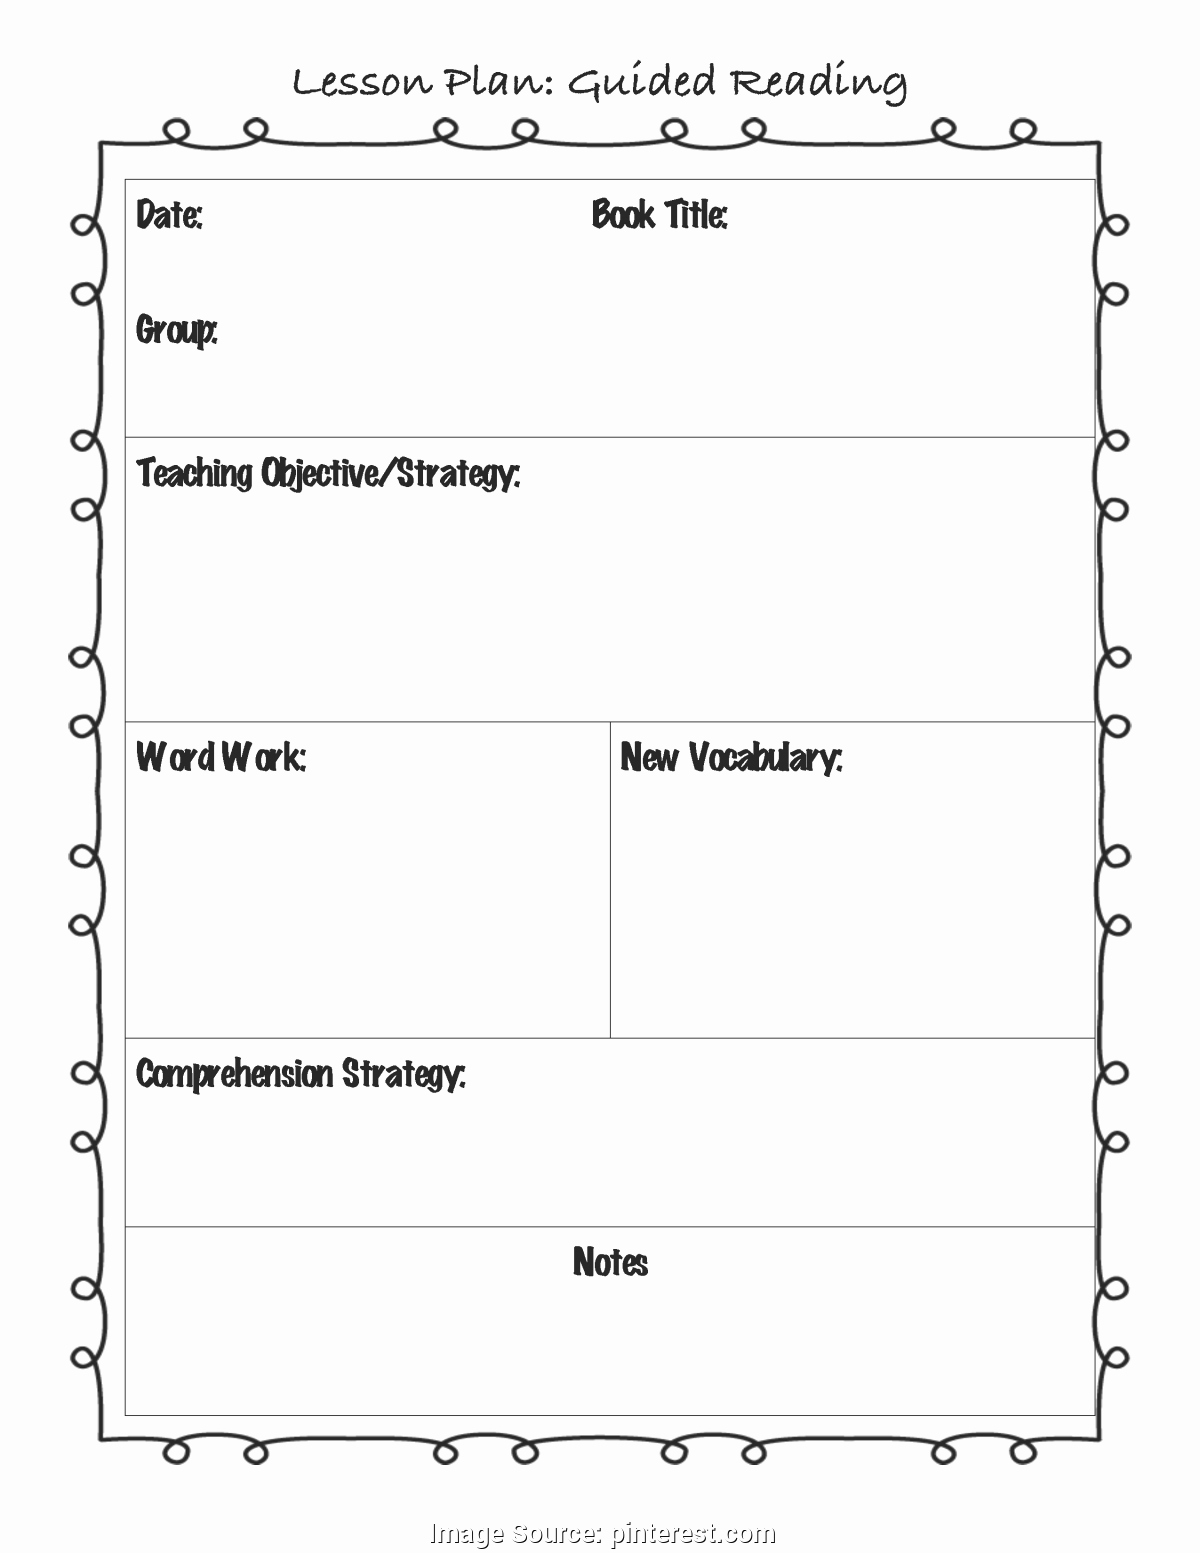 Dance Lesson Plan Template Lovely Blended Learning Lesson Plan Template Doc – Instructional